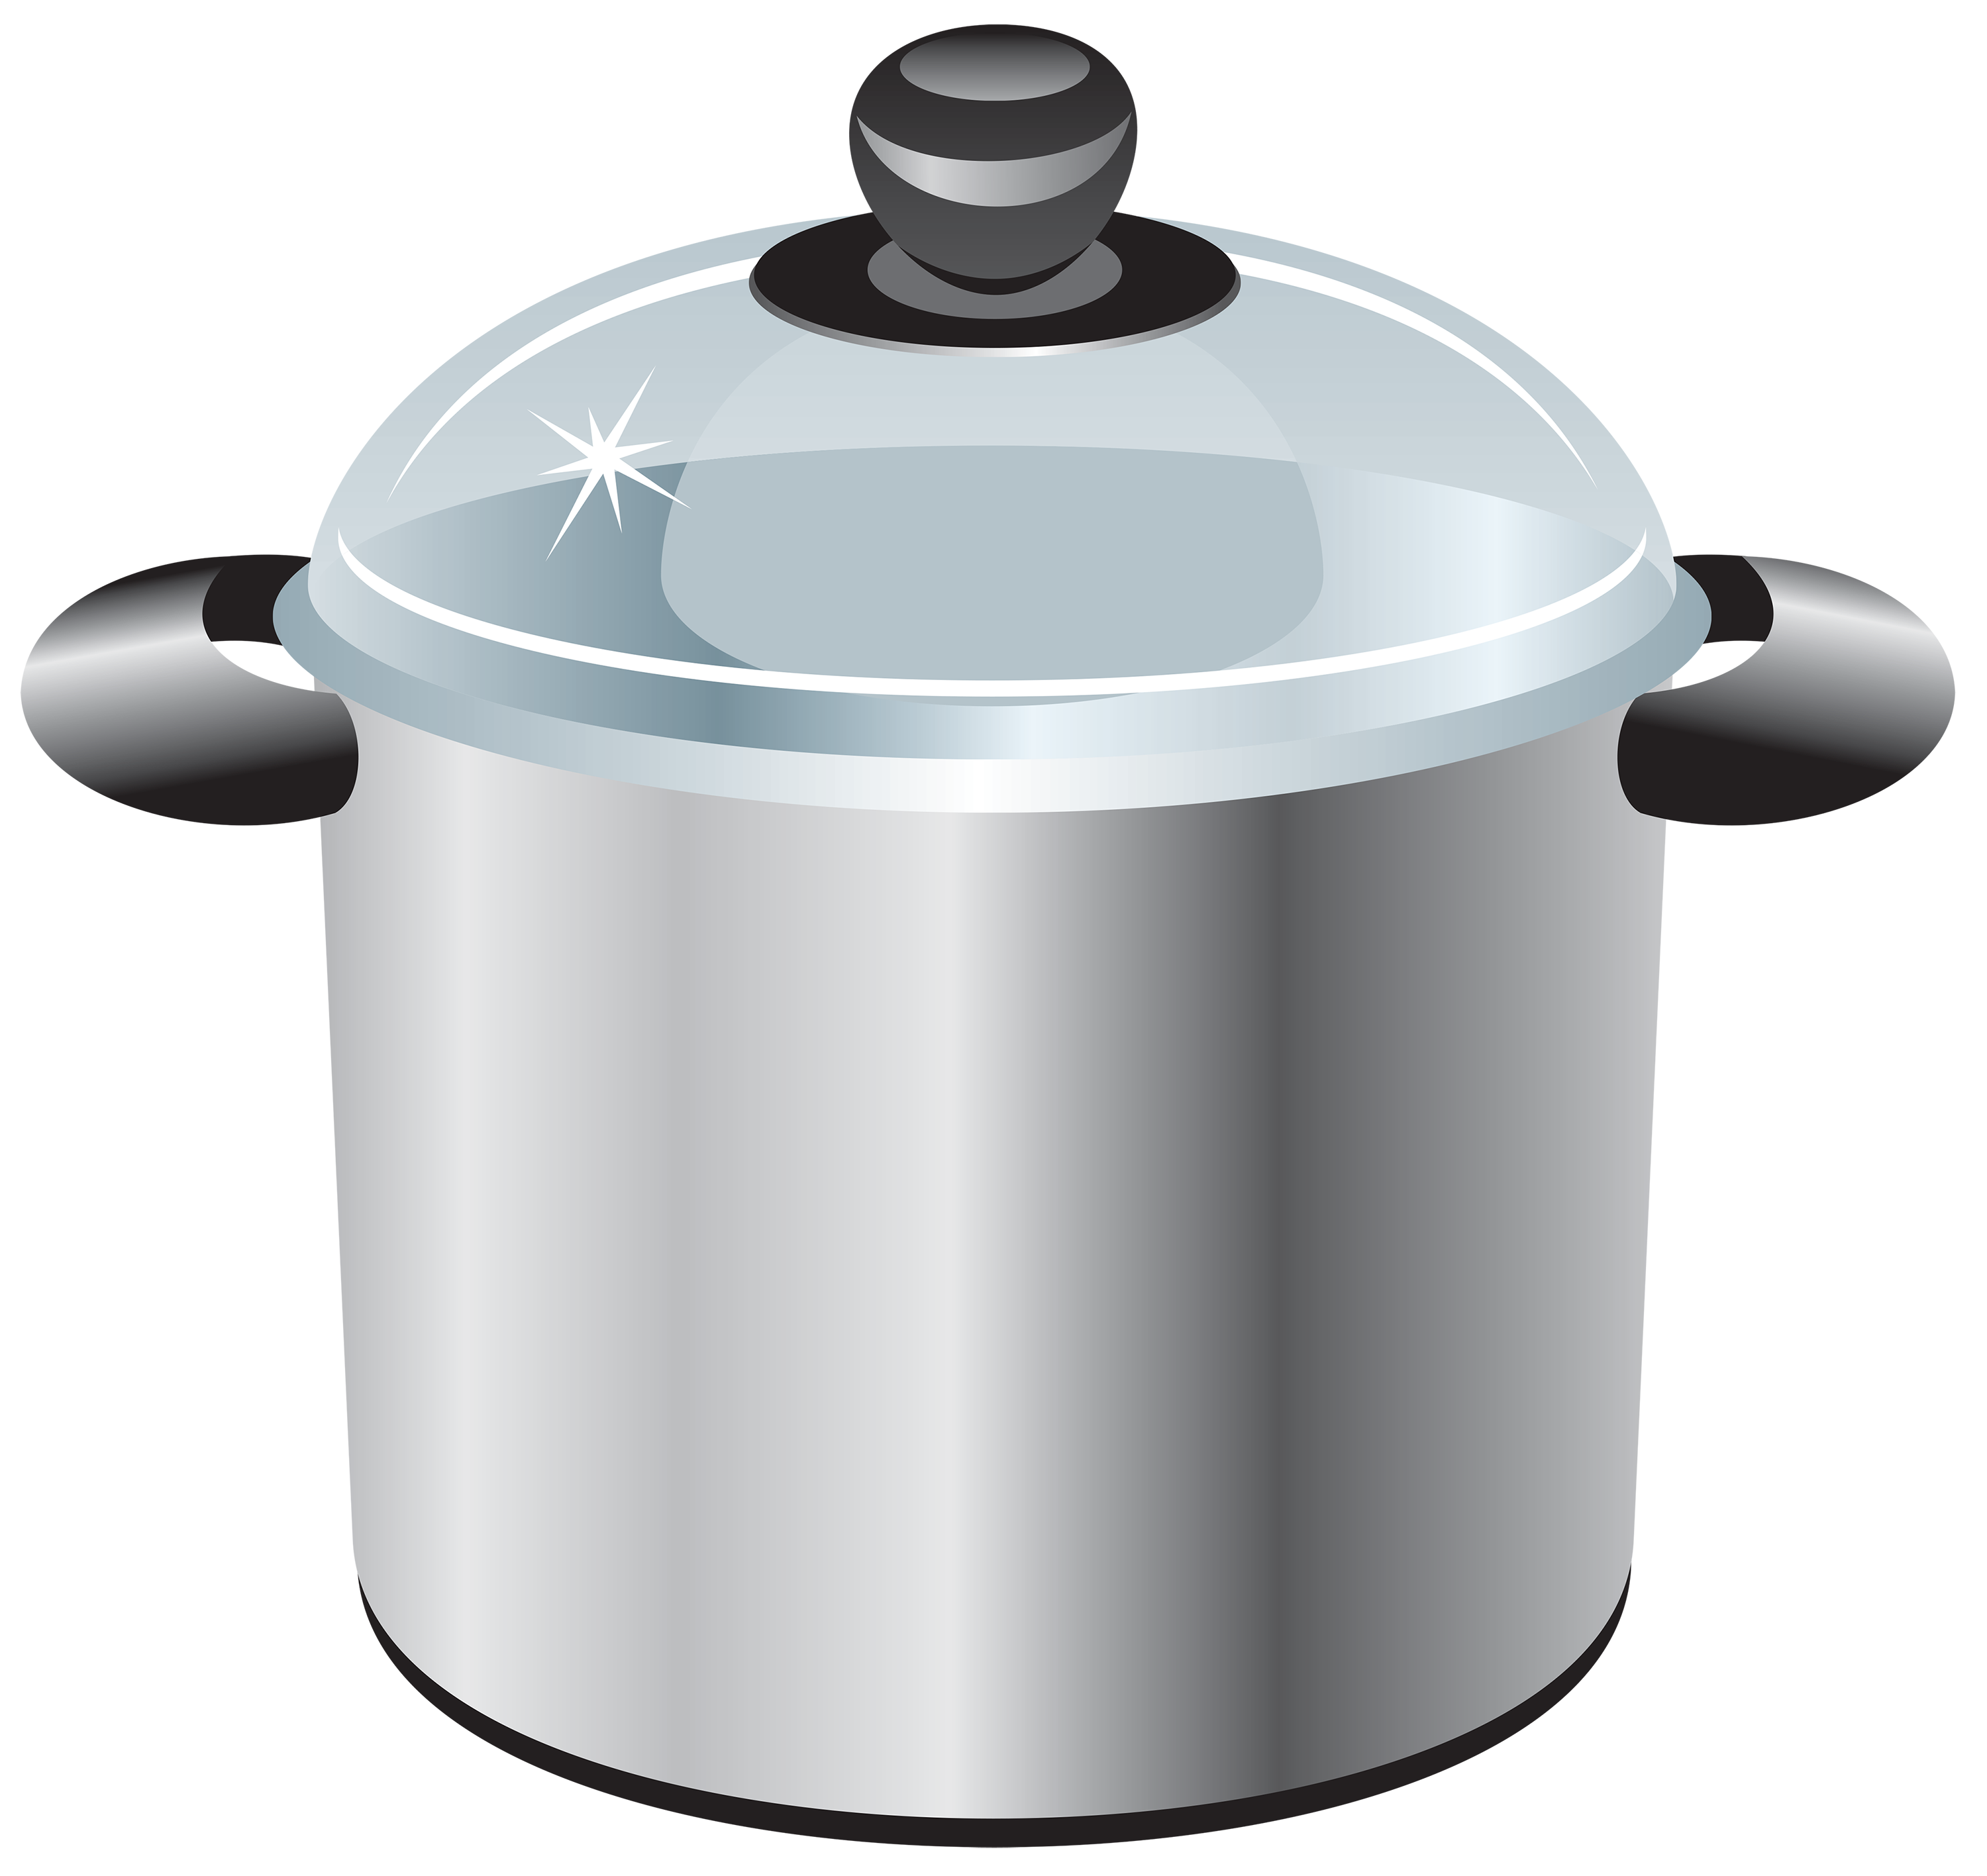 graphic royalty free stock Pot clipart. Silver cooking best web.